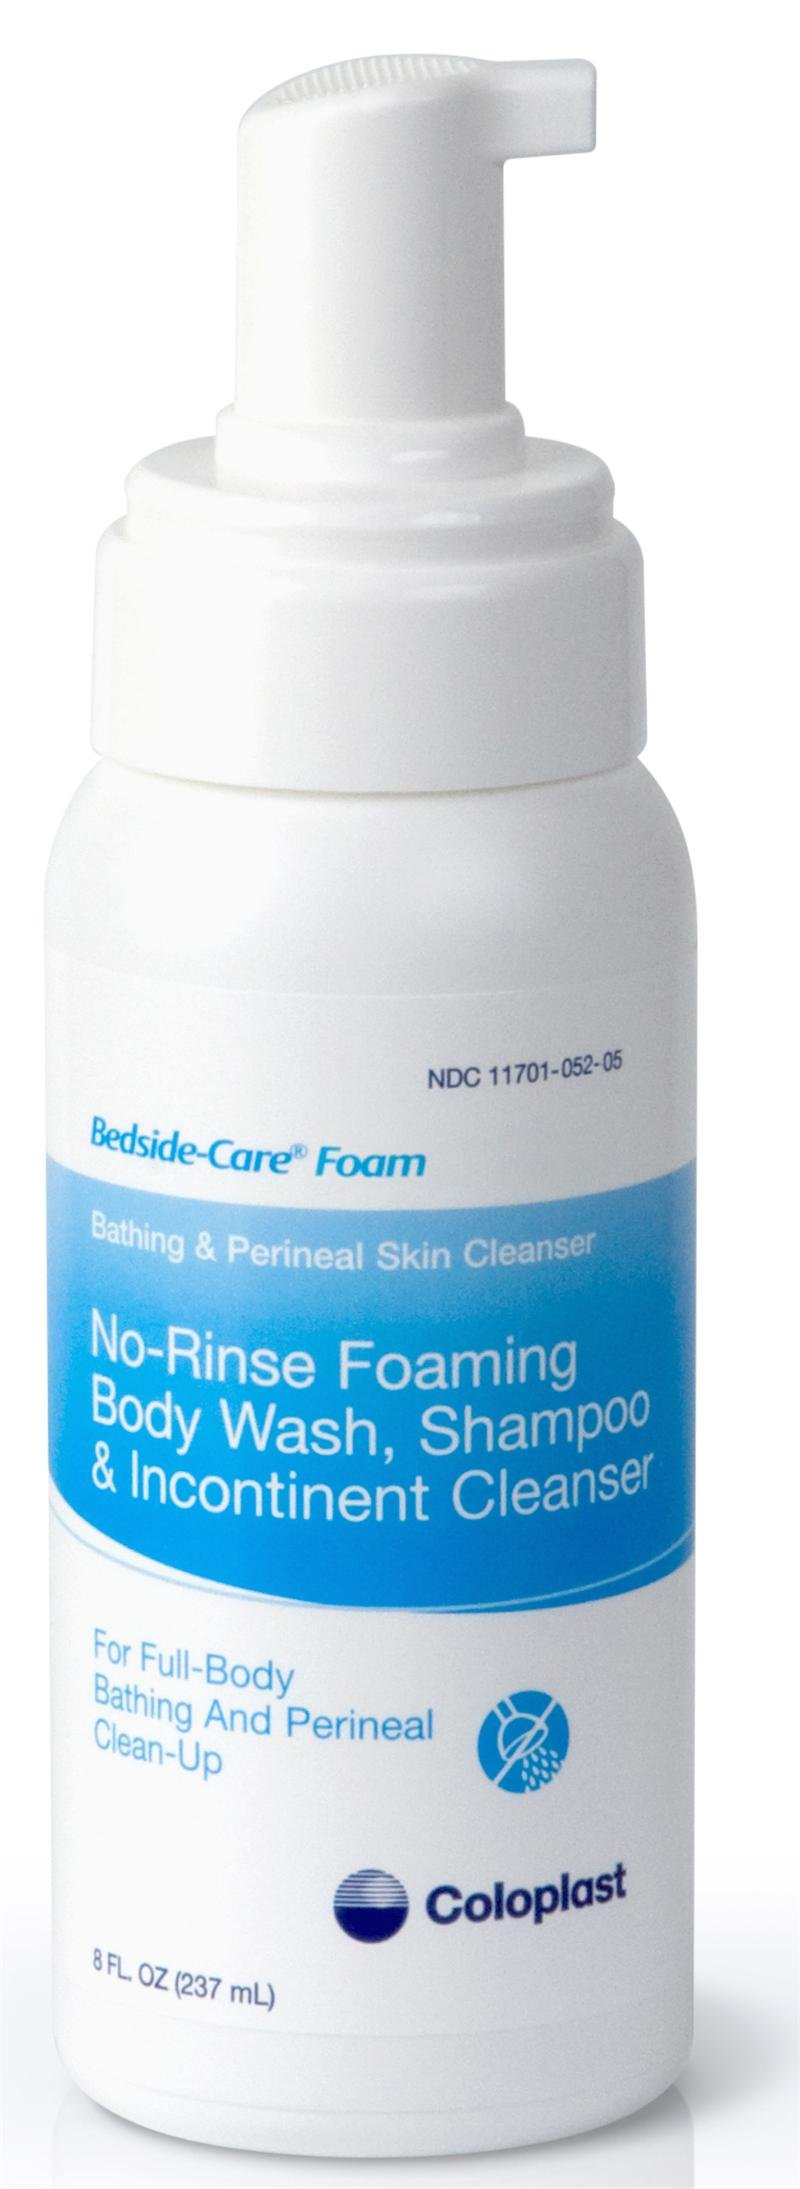 Coloplast Bedside Care No-Rinse Bathing and Perineal Foaming Skin Cleanser - 8 ounce